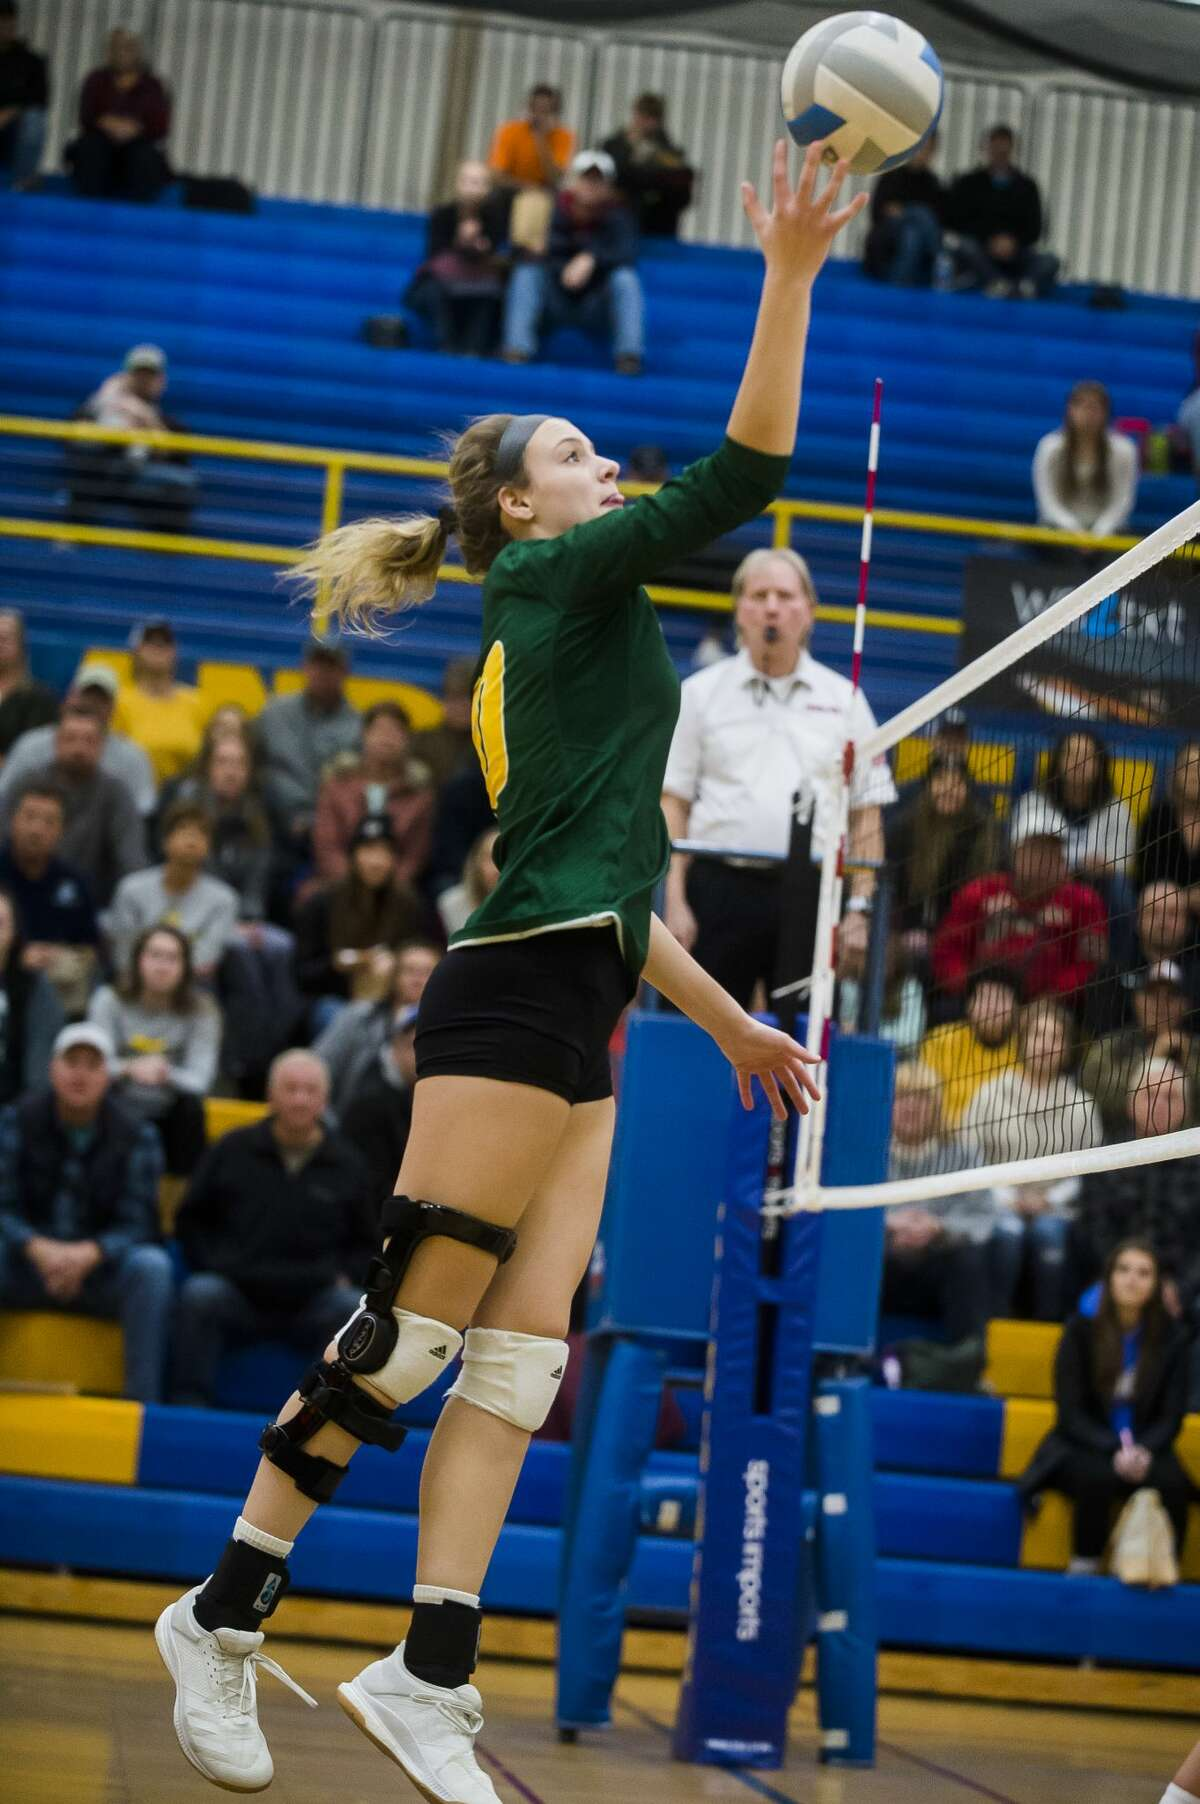 Dow's Haley Jaster tips the ball during the Chargers' district final against Mt. Pleasant Thursday, Nov. 7, 2019 at Midland High School. (Katy Kildee/kkildee@mdn.net)